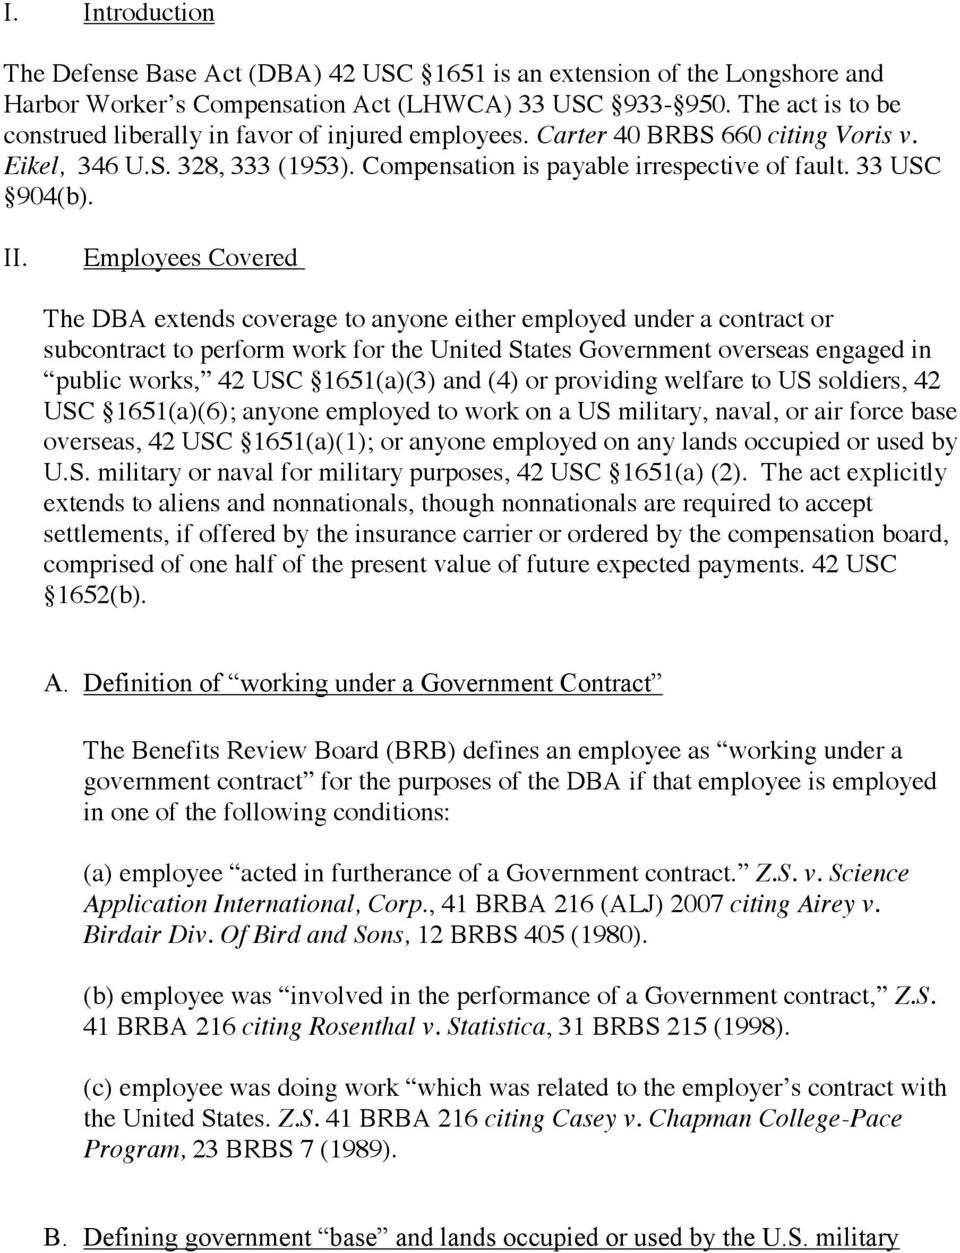 II. Employees Covered The DBA extends coverage to anyone either employed under a contract or subcontract to perform work for the United States Government overseas engaged in public works, 42 USC